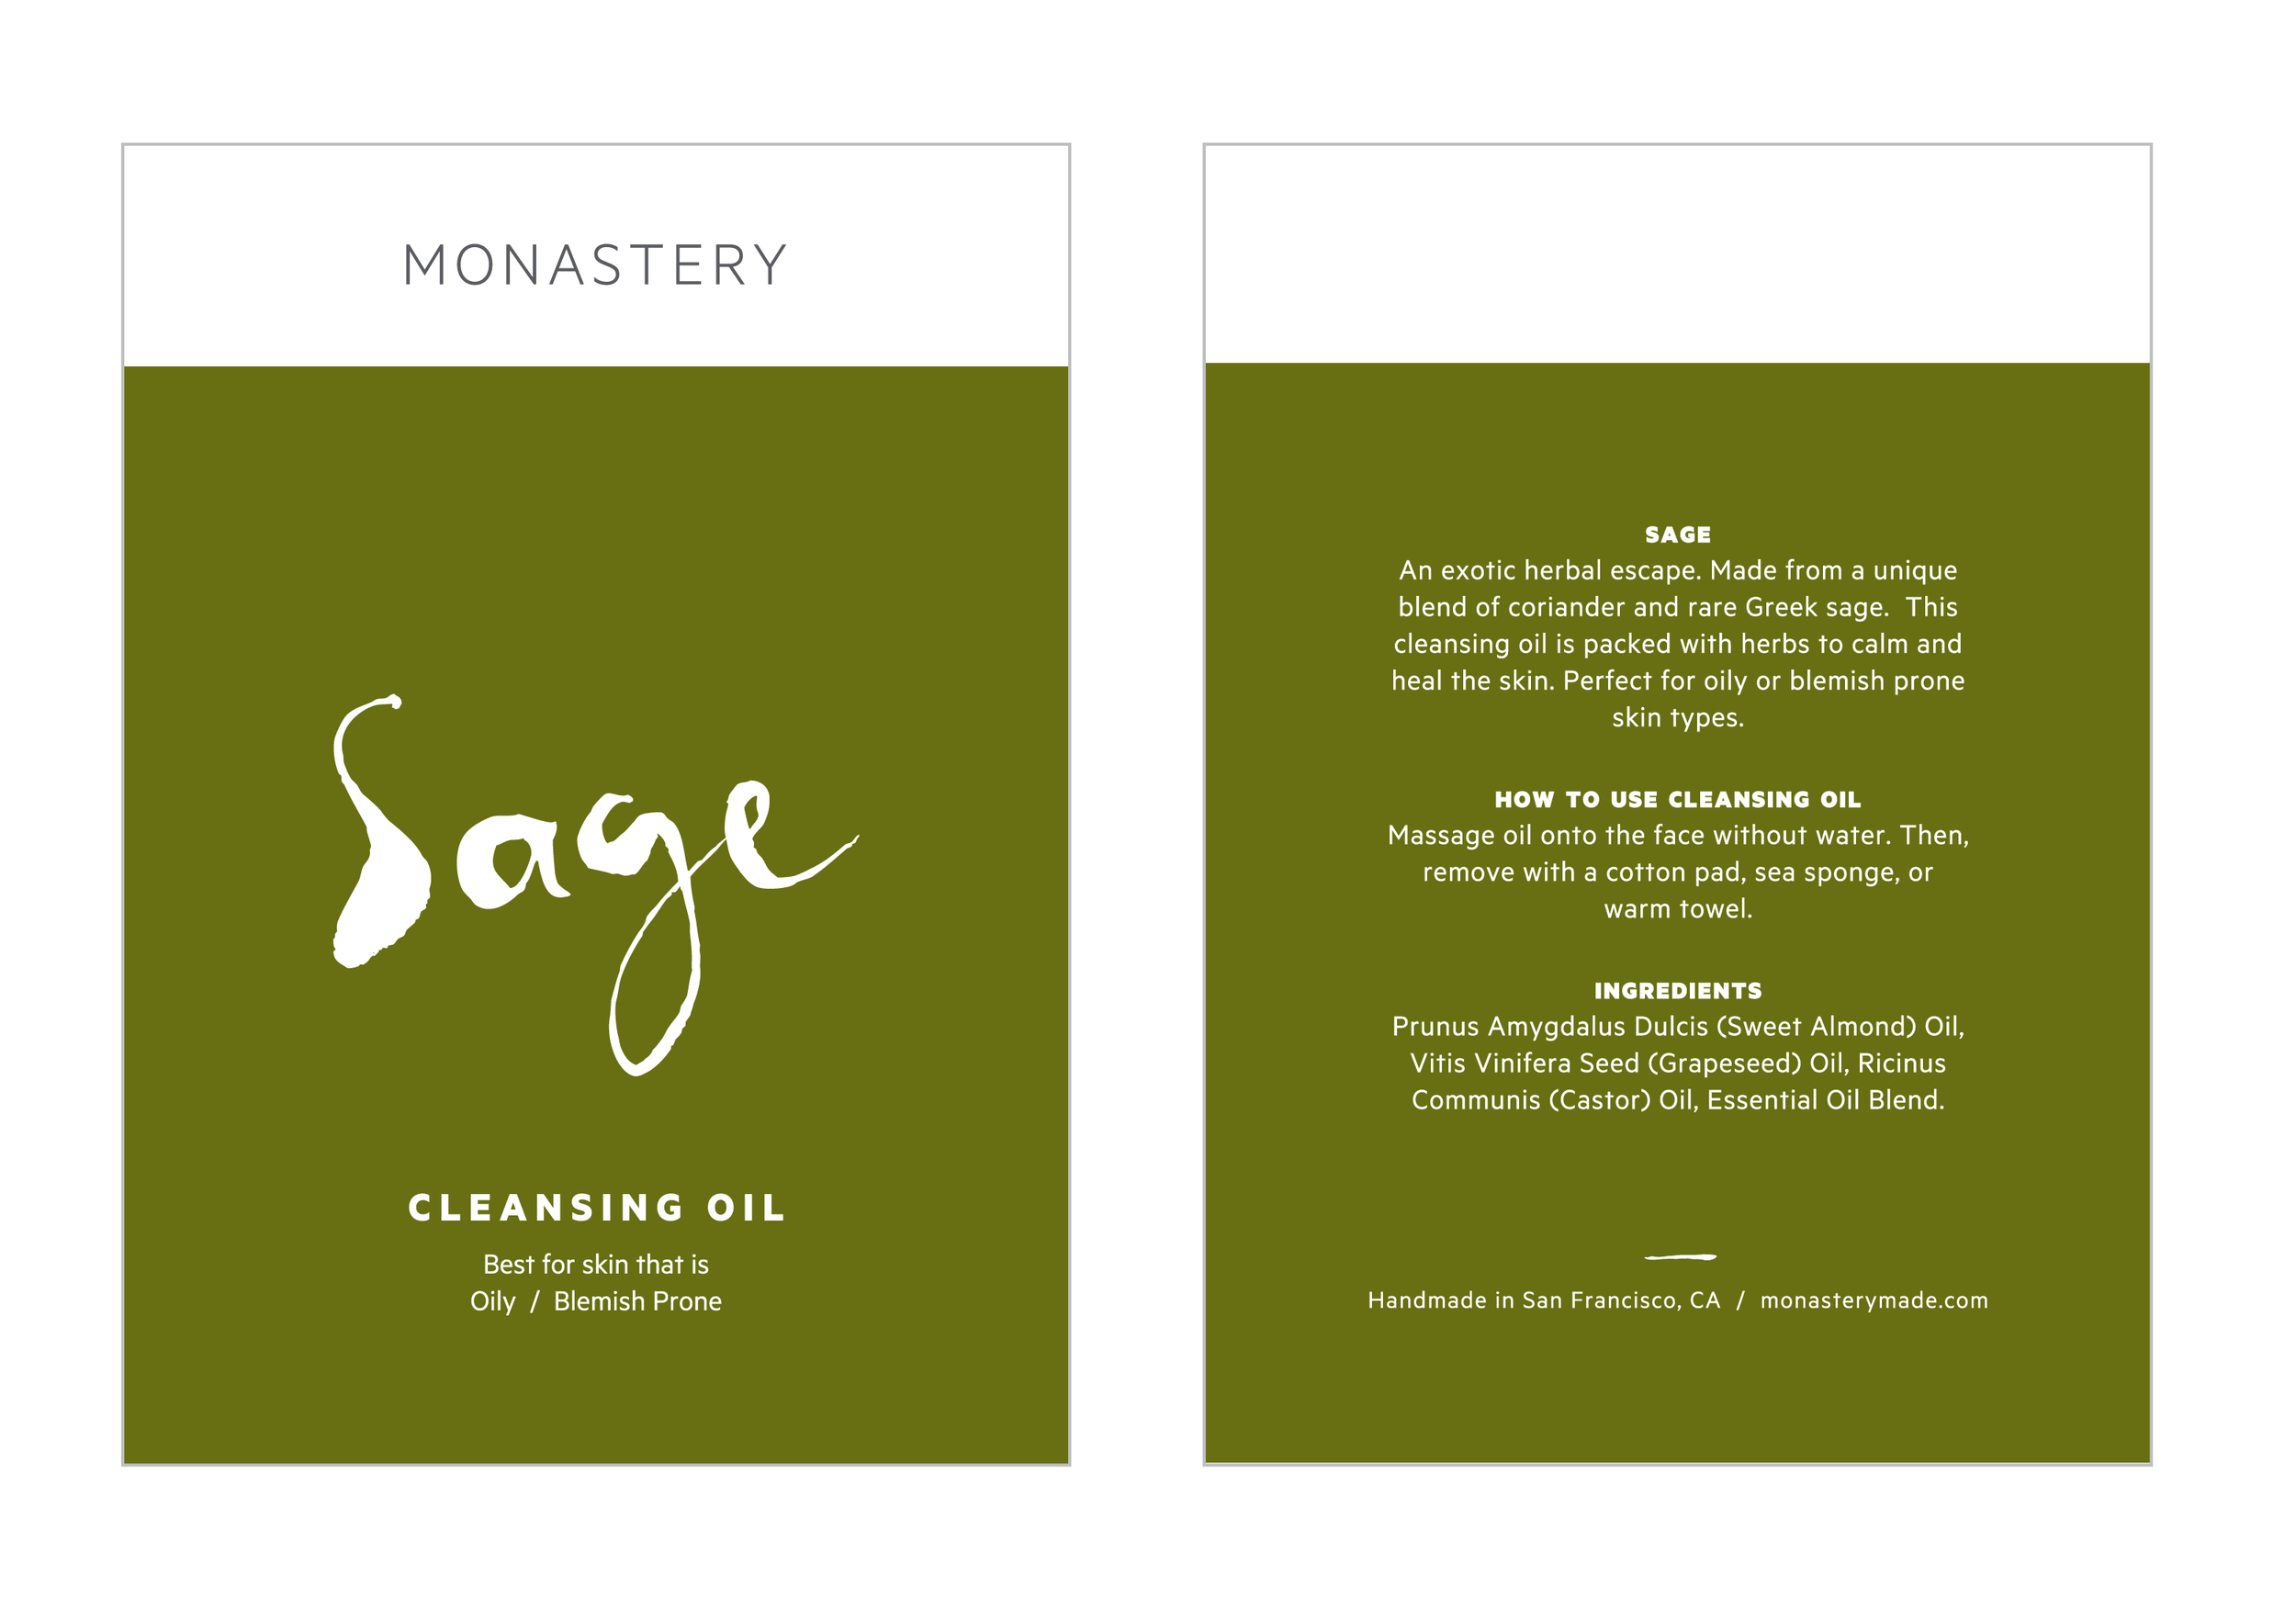 Postcard-sized product detail cards